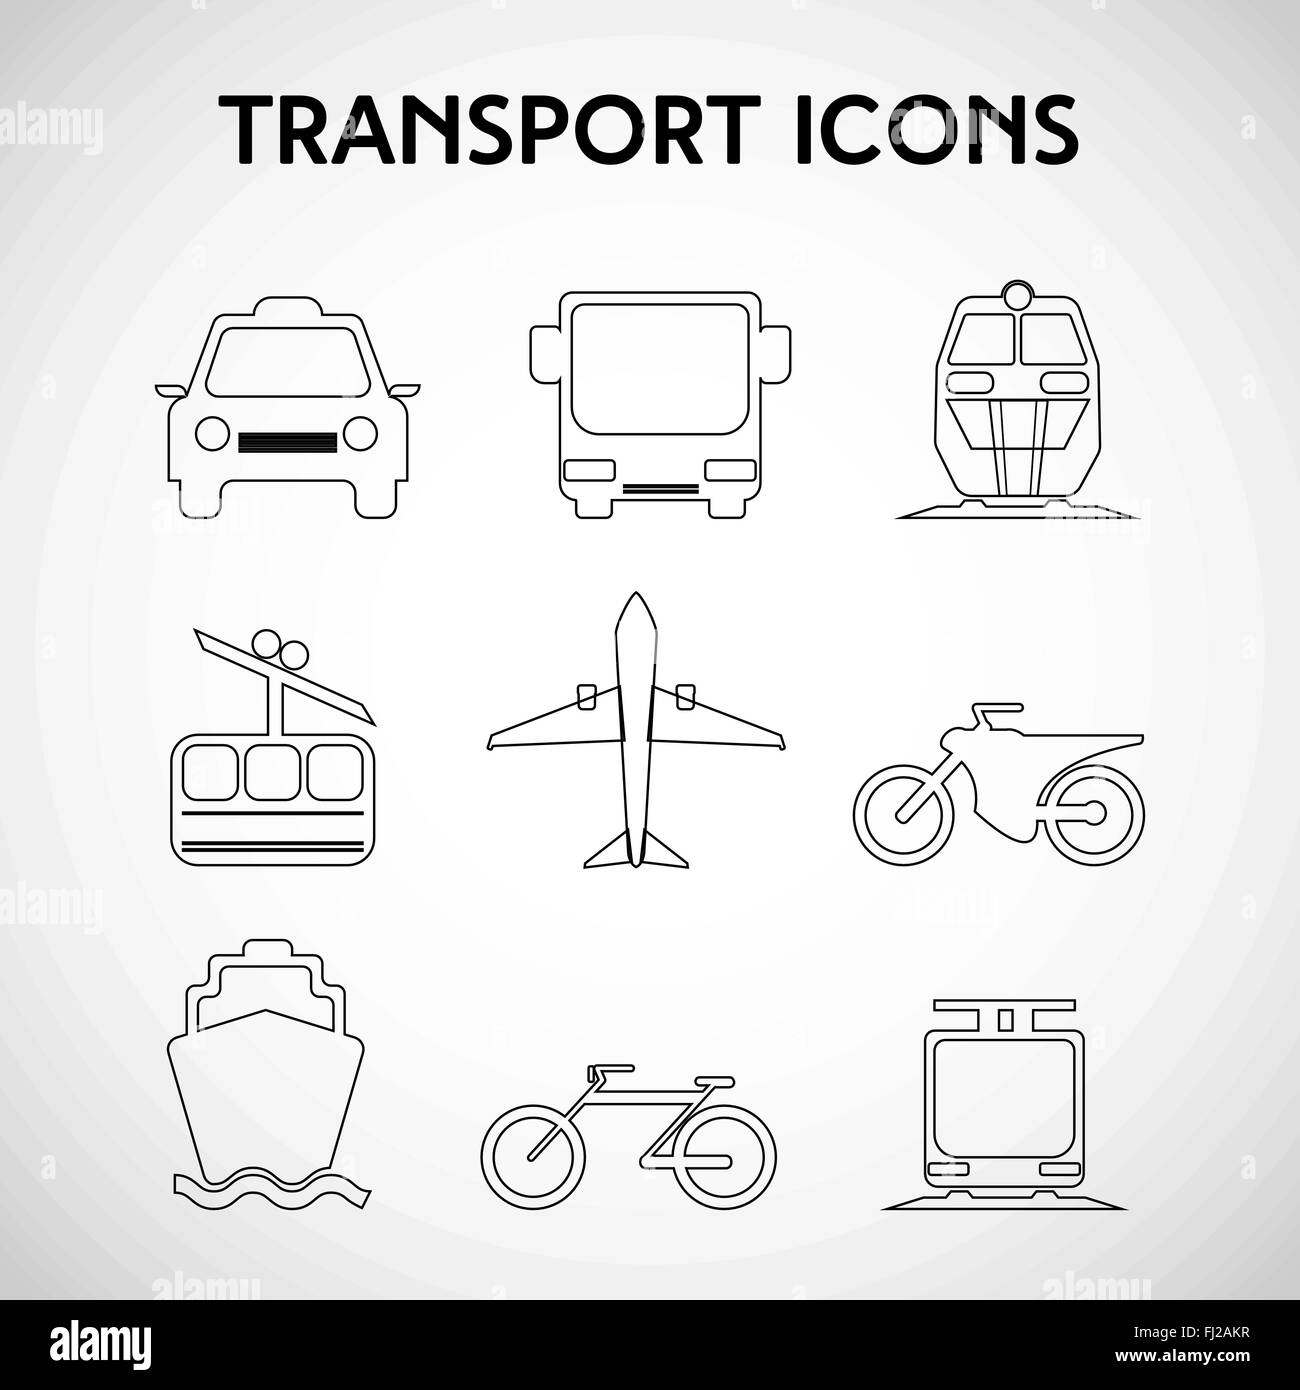 transportation big icon set different types of vehicles car bus